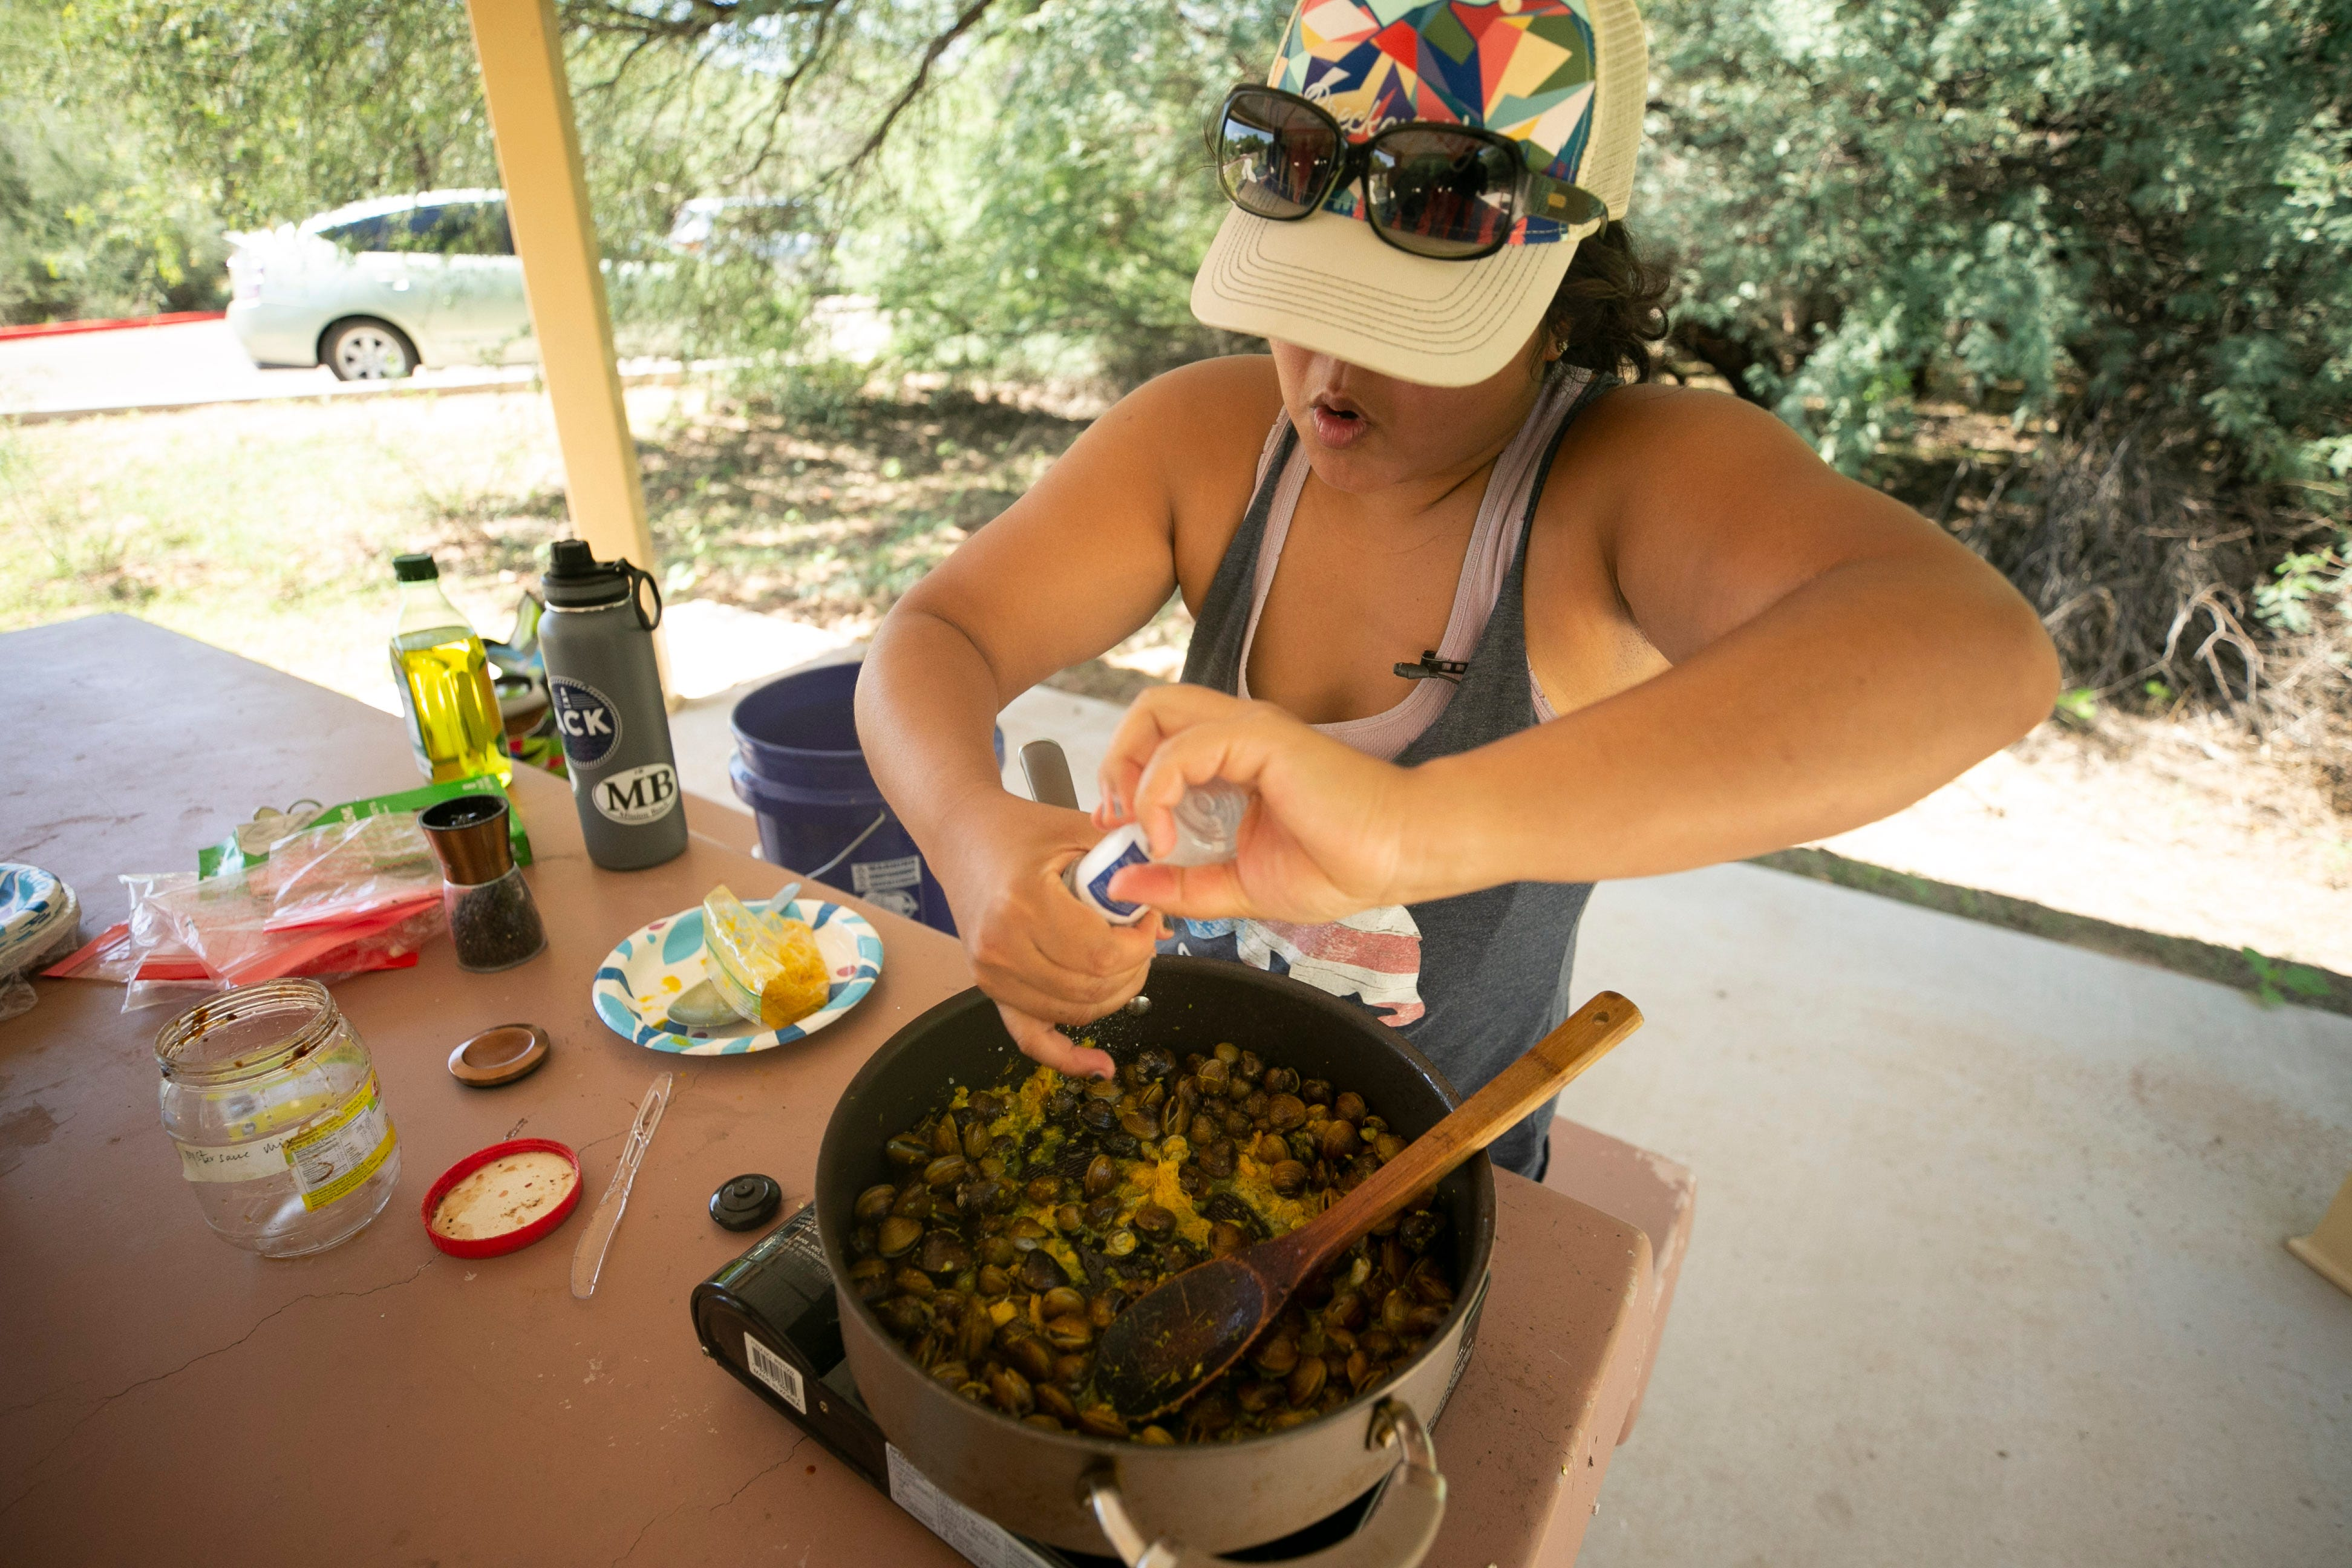 Jenneen Sambour of Phoenix stir-fries Asiatic clams just taken from the Verde River with Kroeung, a Cambodian marinade and spice paste at the Needle Rock Recreation Site outside of Rio Verde on July 28, 2021.